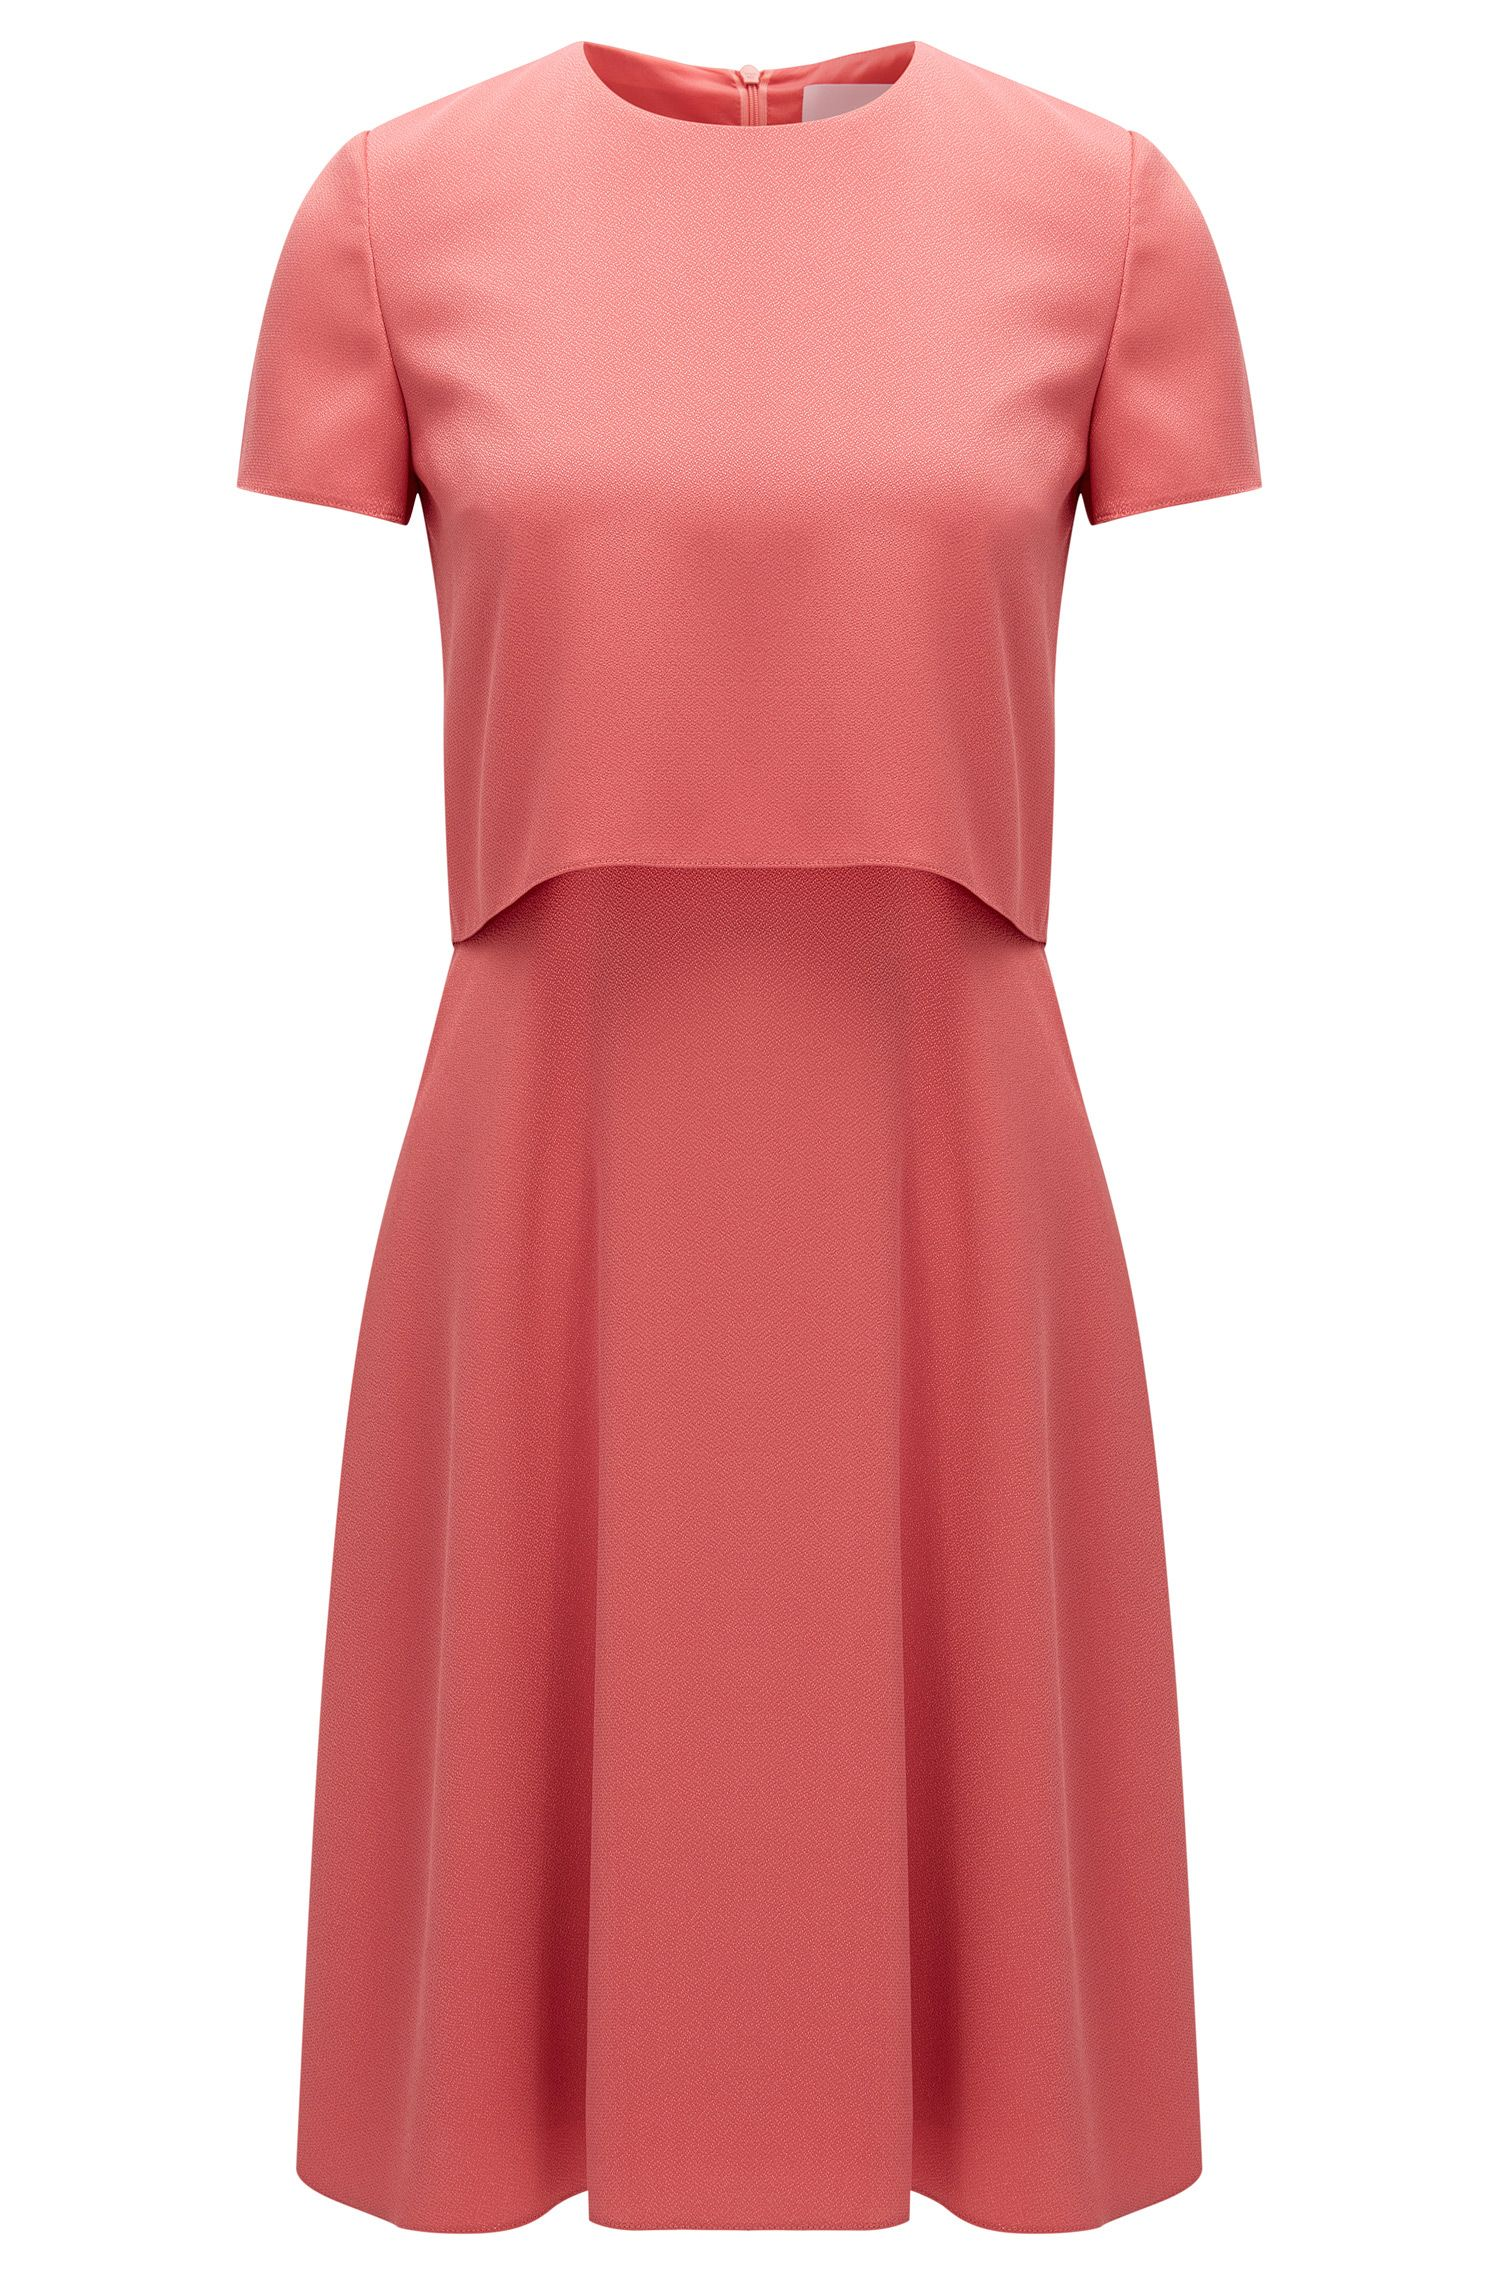 Regular-fit layered dress in hammered fabric